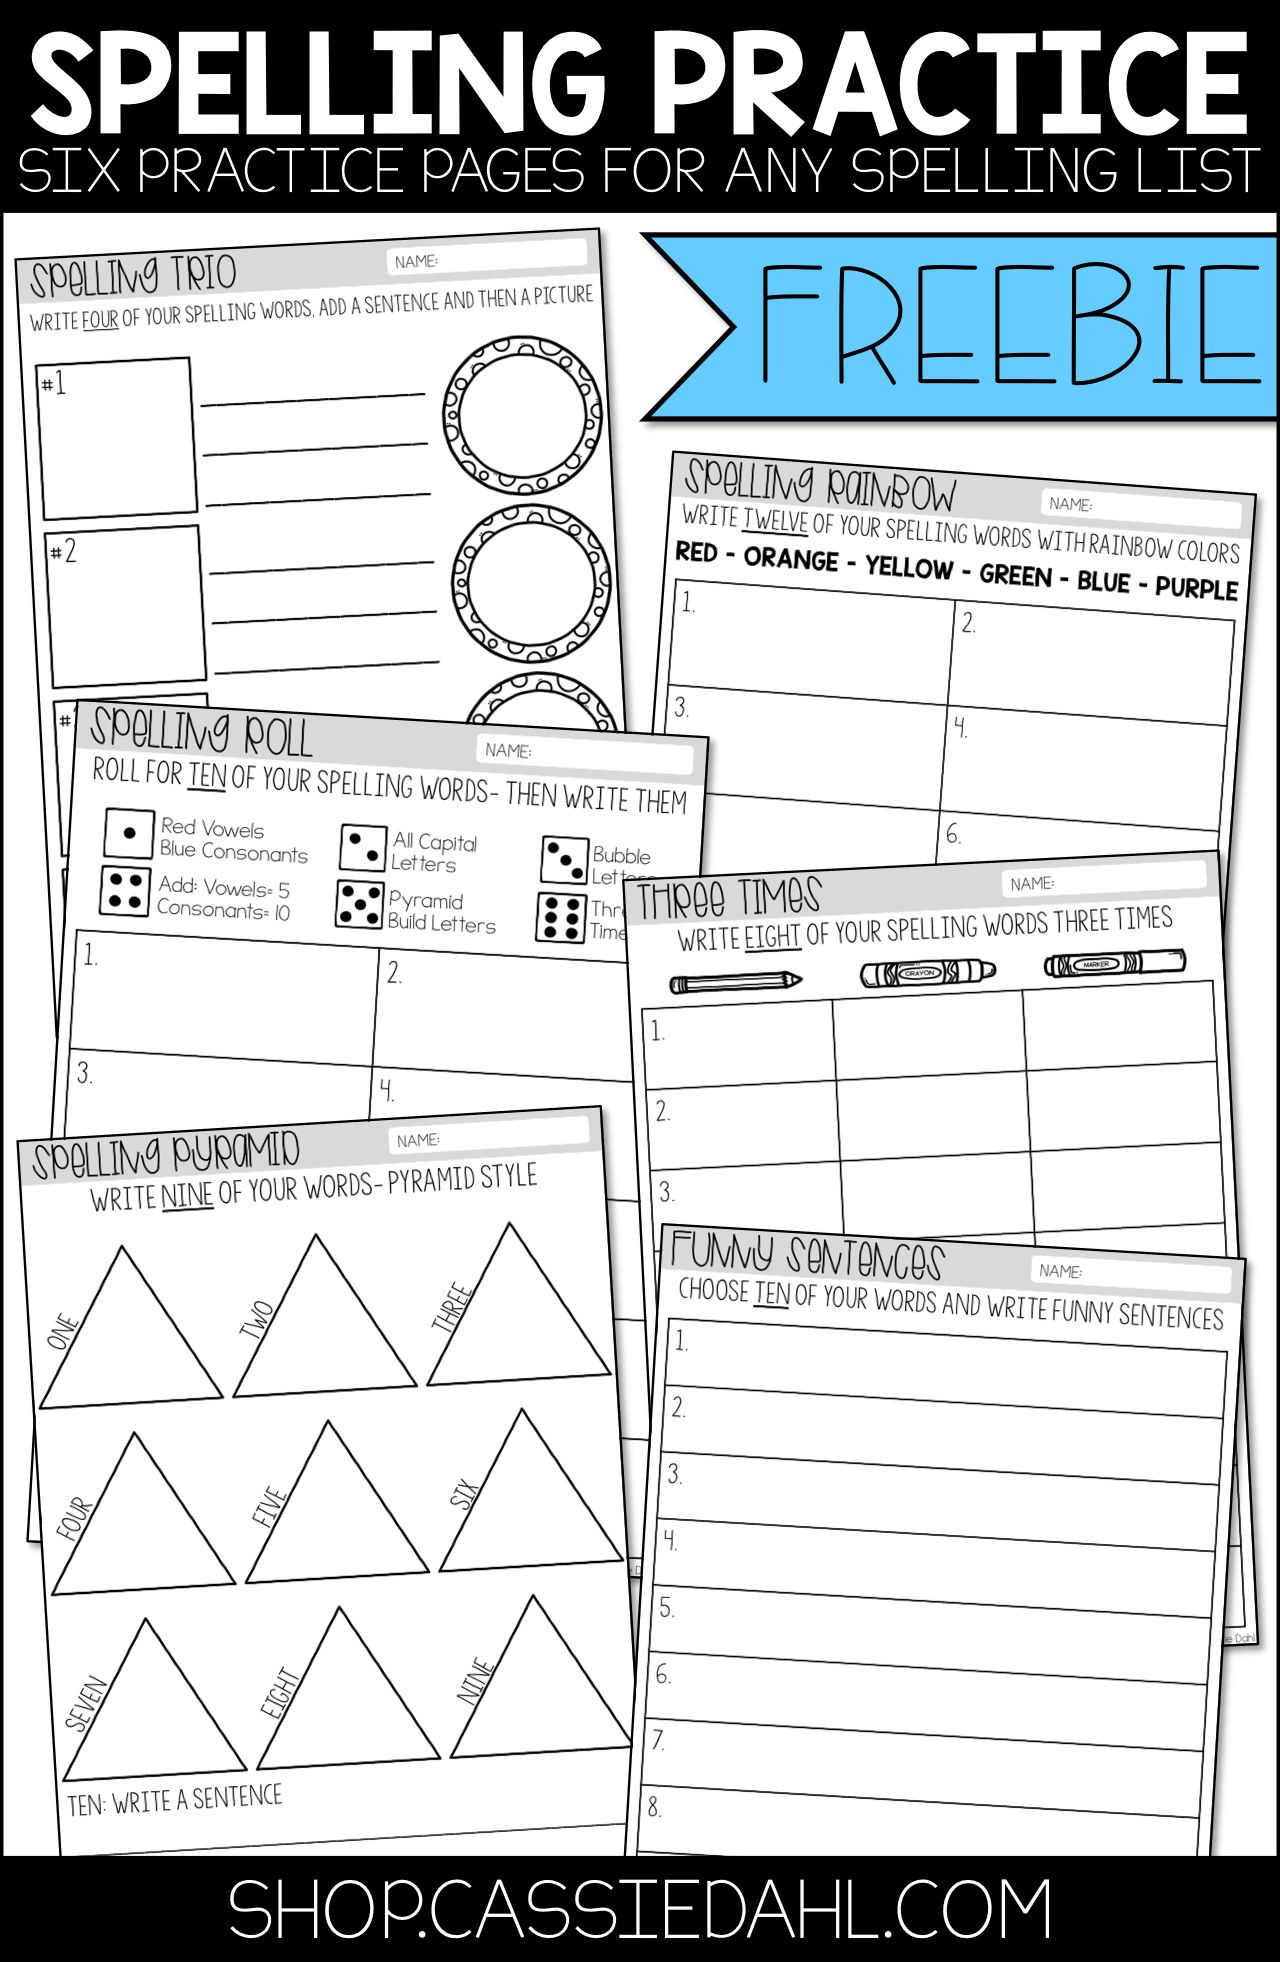 This Freebie Contains Six Practice Pages That You Can Use With Any Spelling List These Sheets